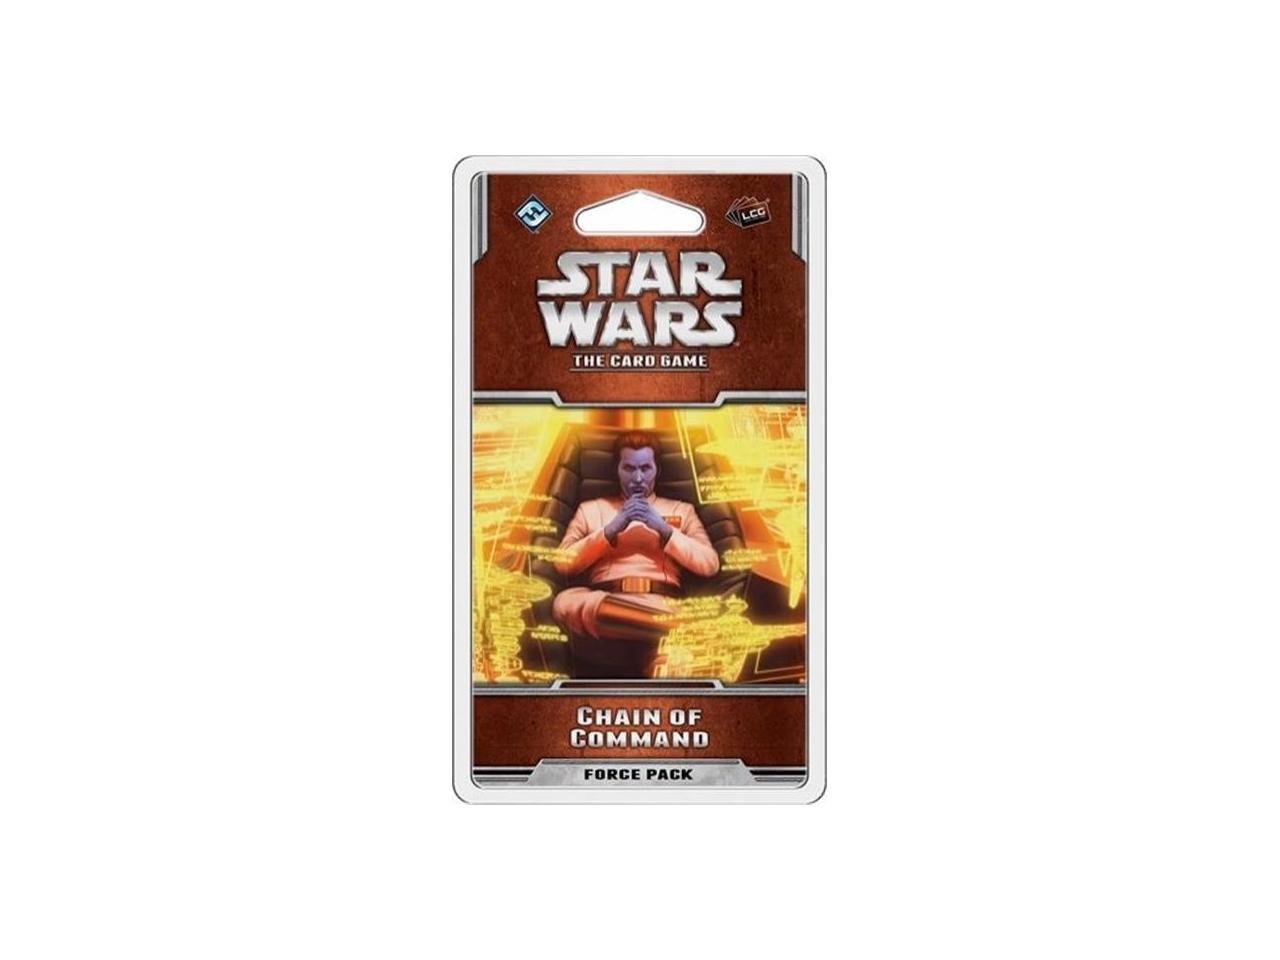 Star Wars LCG General Games//Puzzles General Games /& Activities Chain of Command Fantasy Flight Publishing SWC20 Card Games Card Games